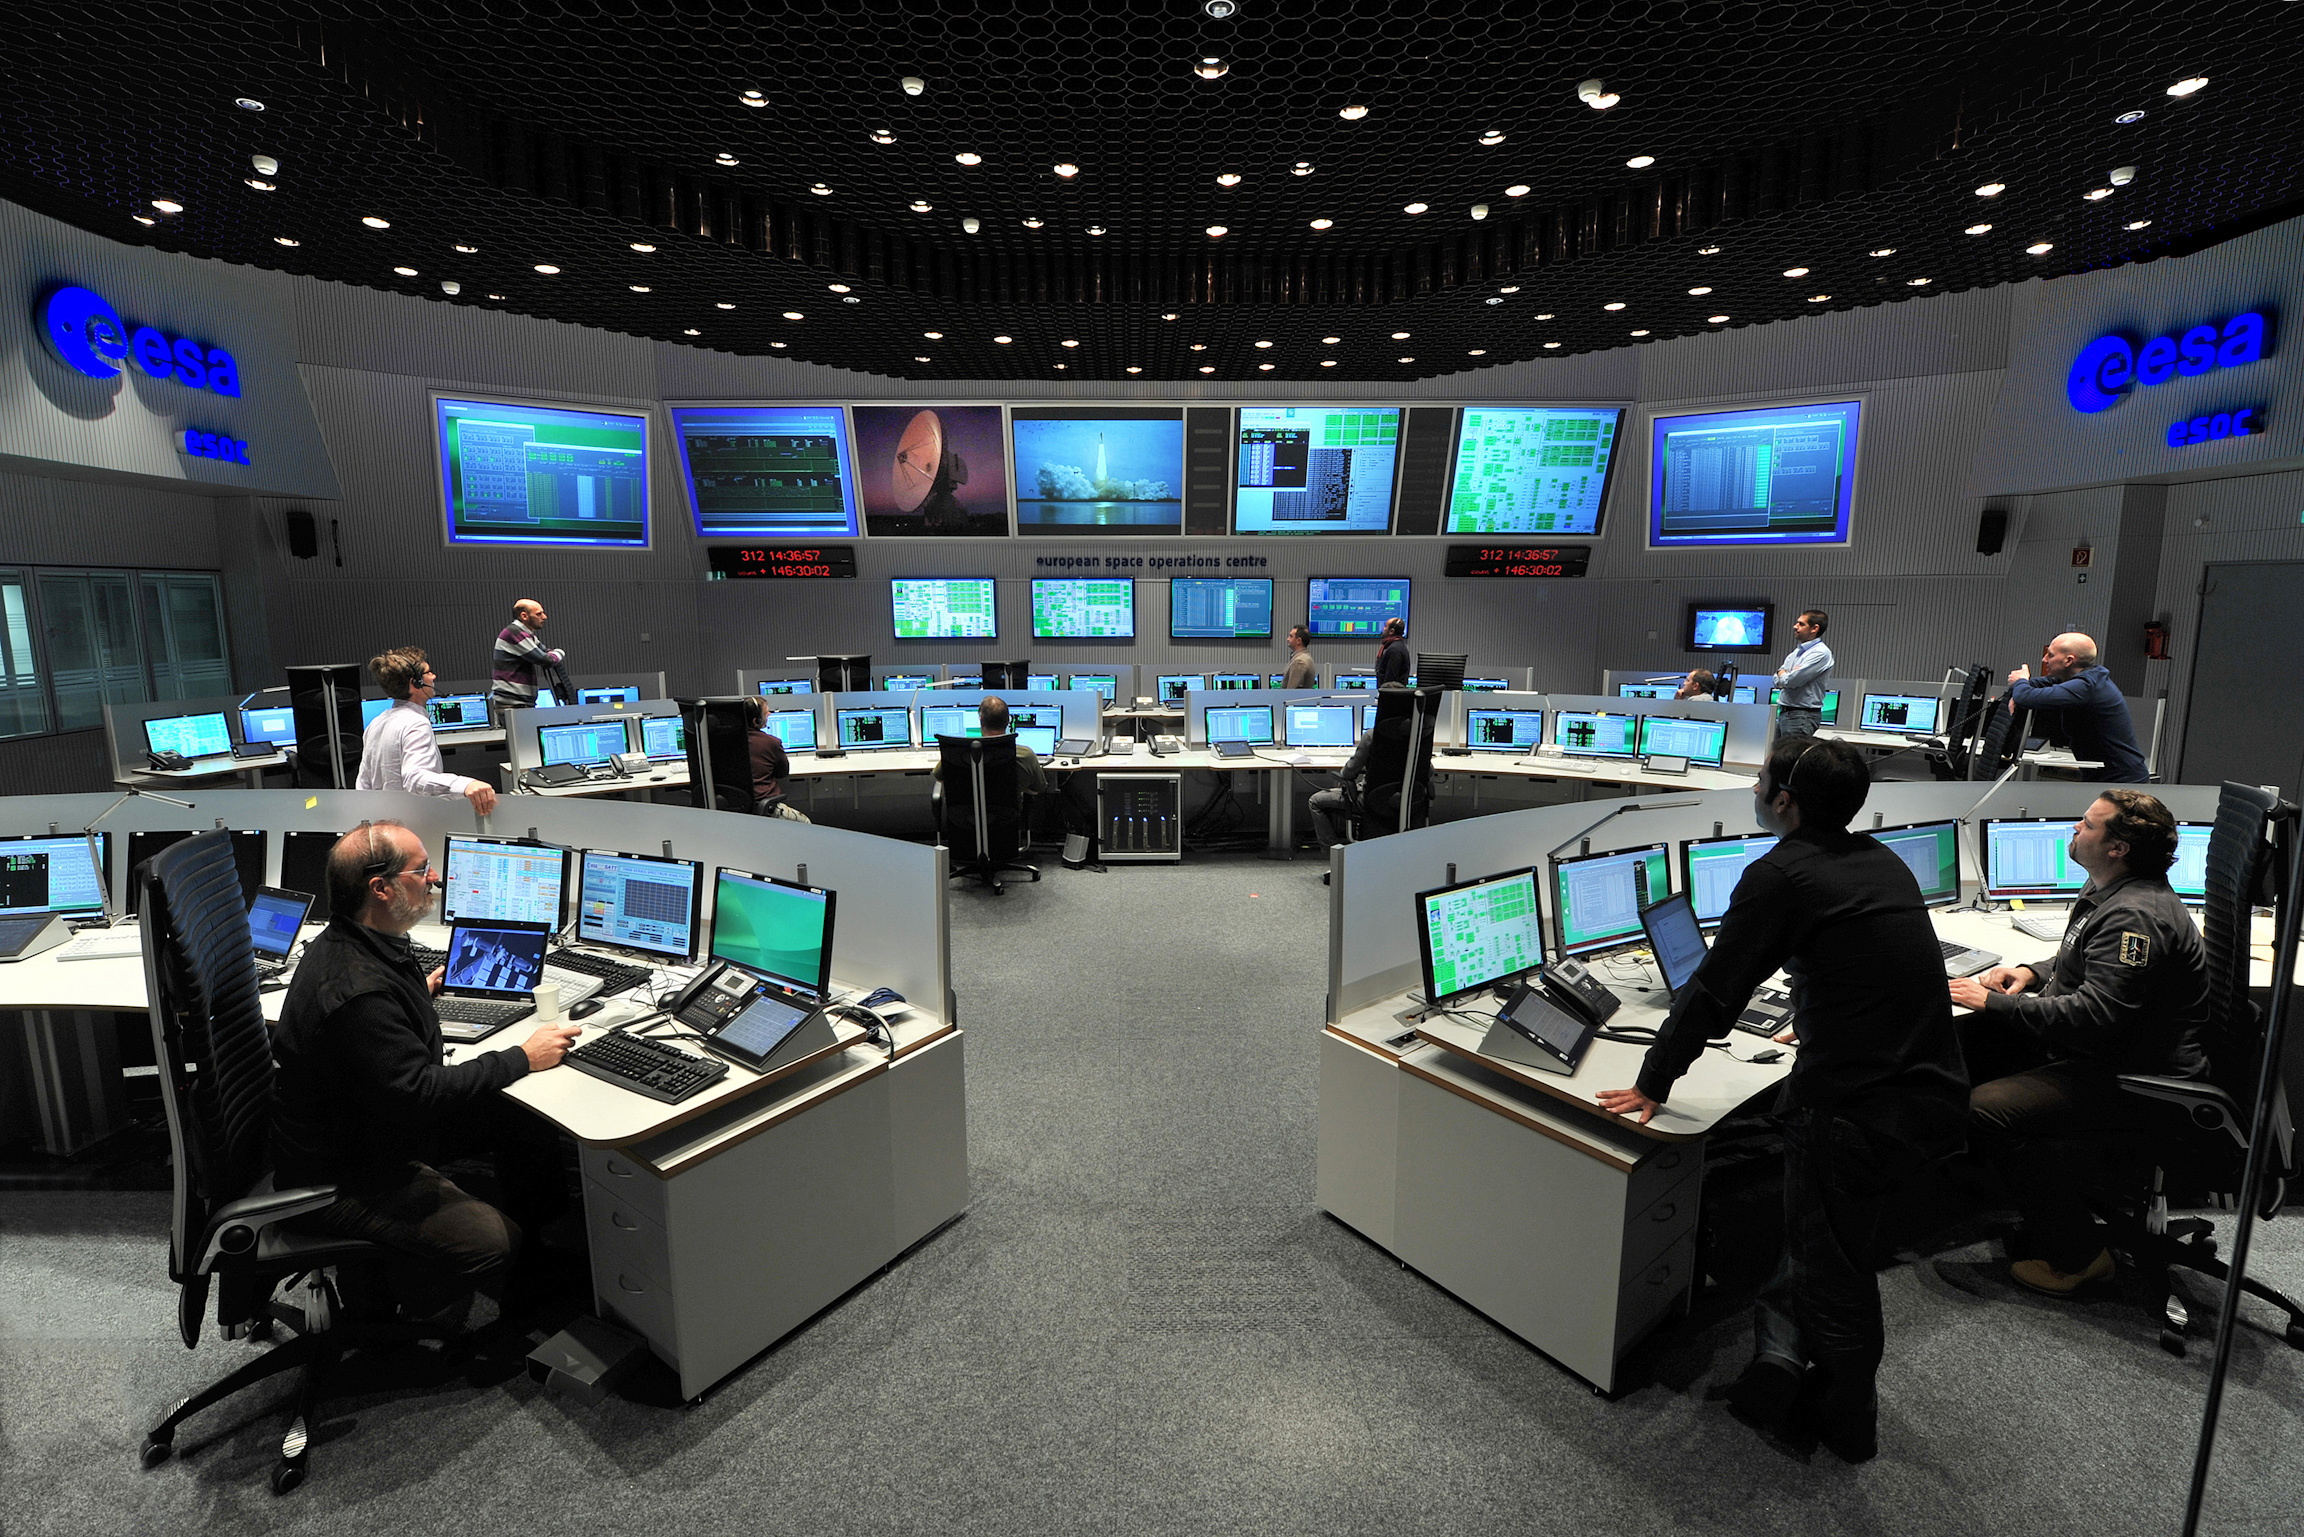 Space in Images - 2012 - 06 - Main Control Room at ESA's ...